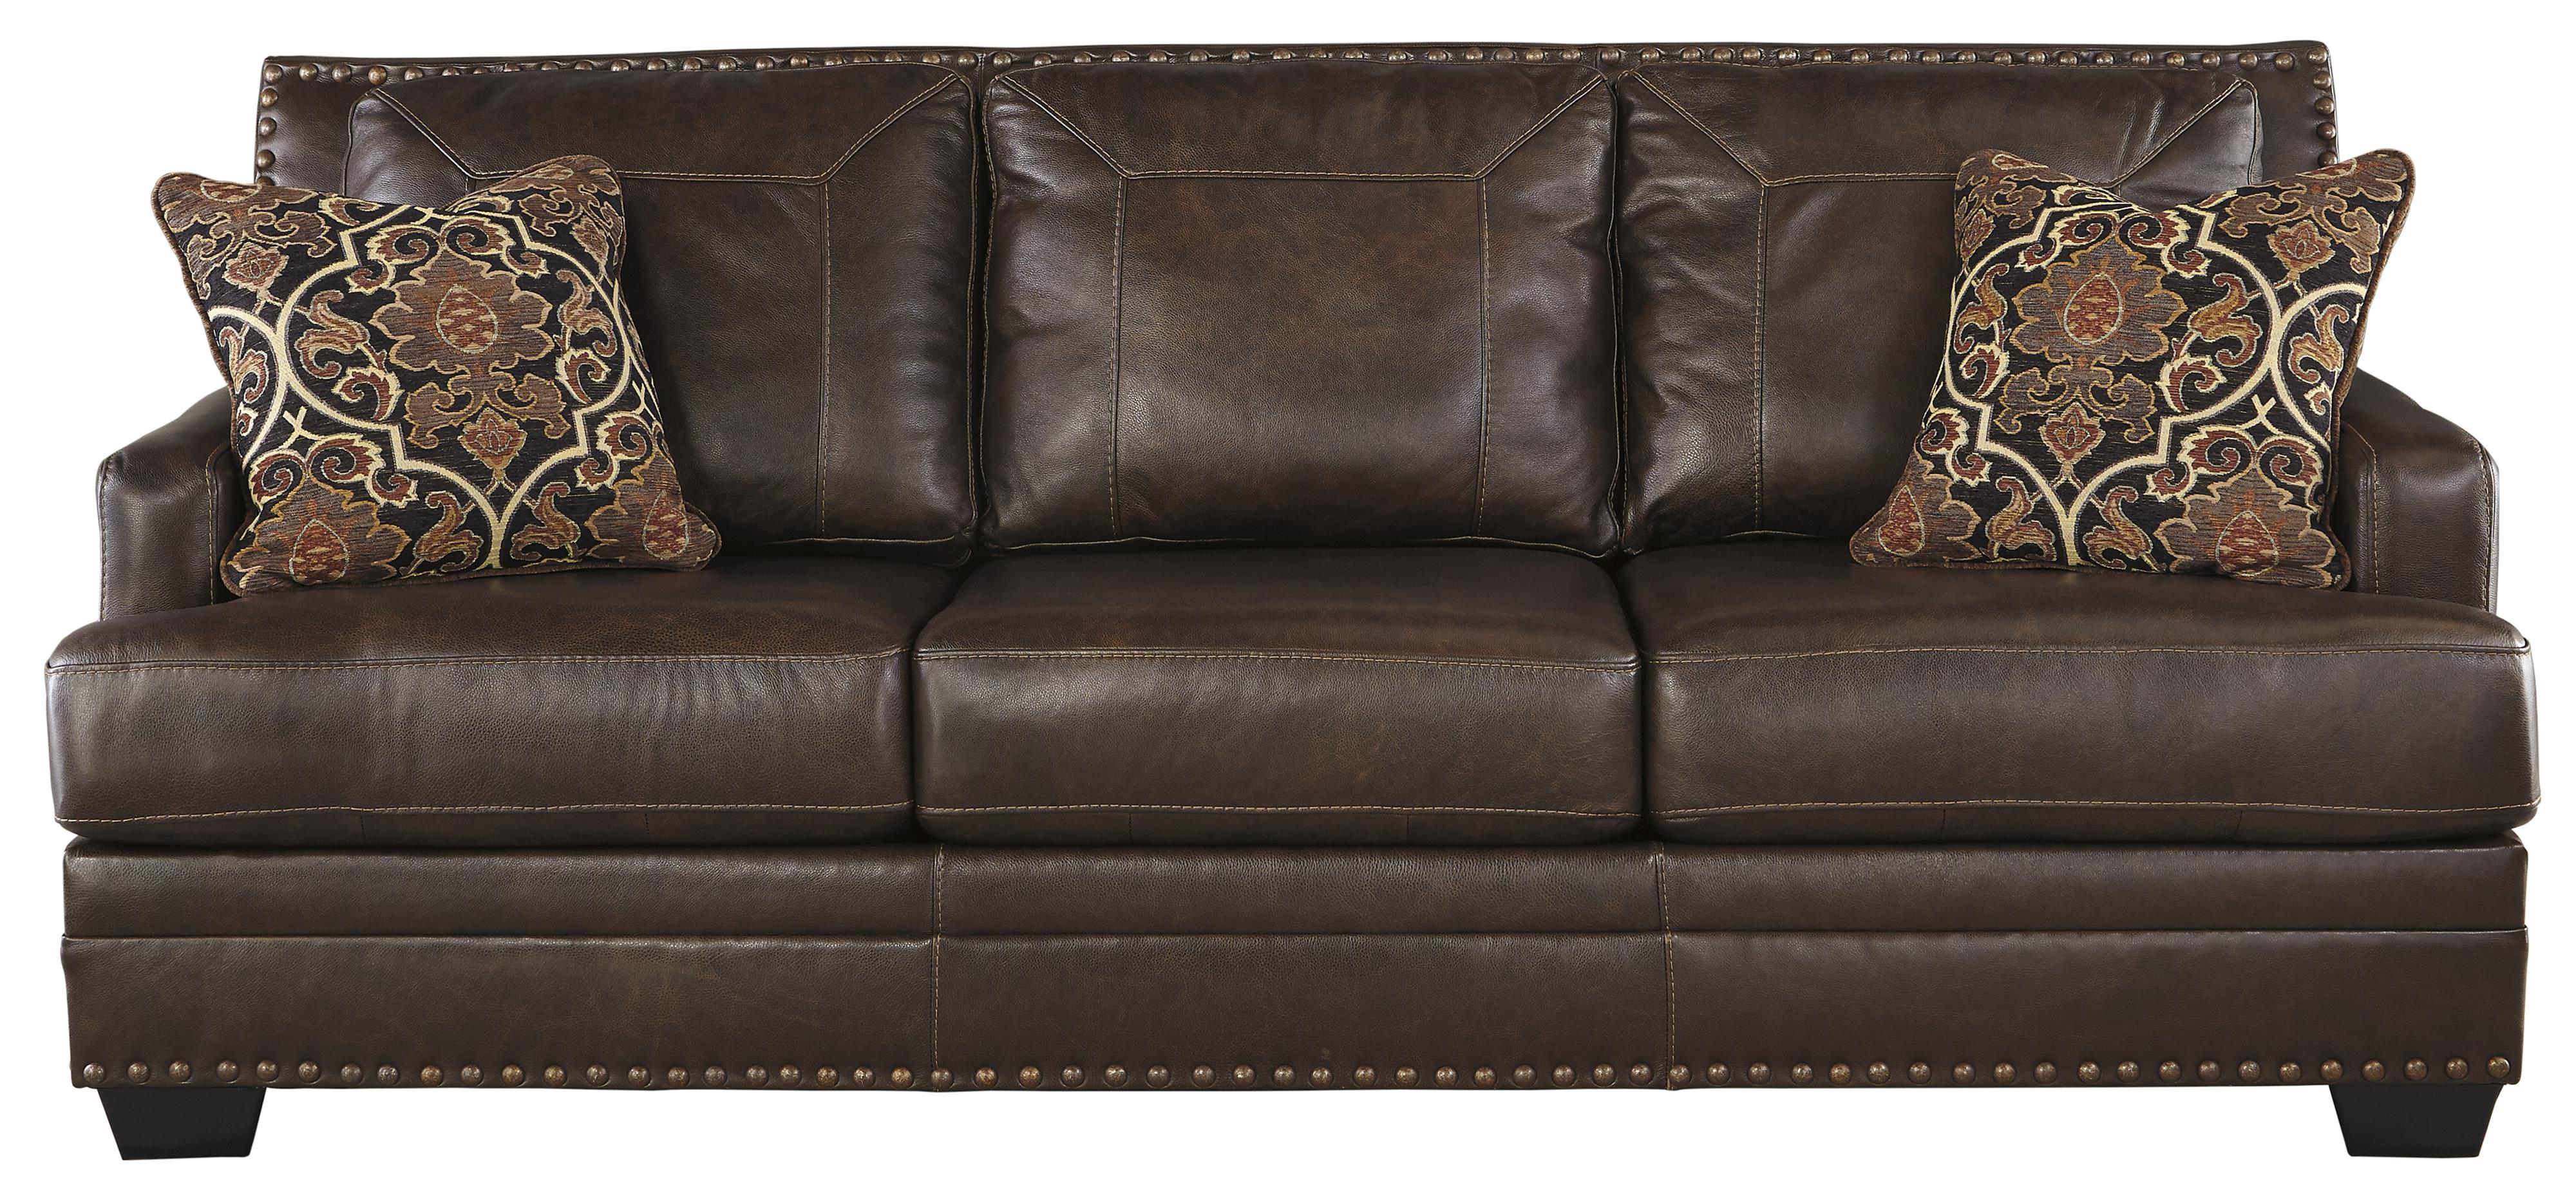 Signature Design by Ashley Corvan Queen Sofa Sleeper - Item Number: 6910339